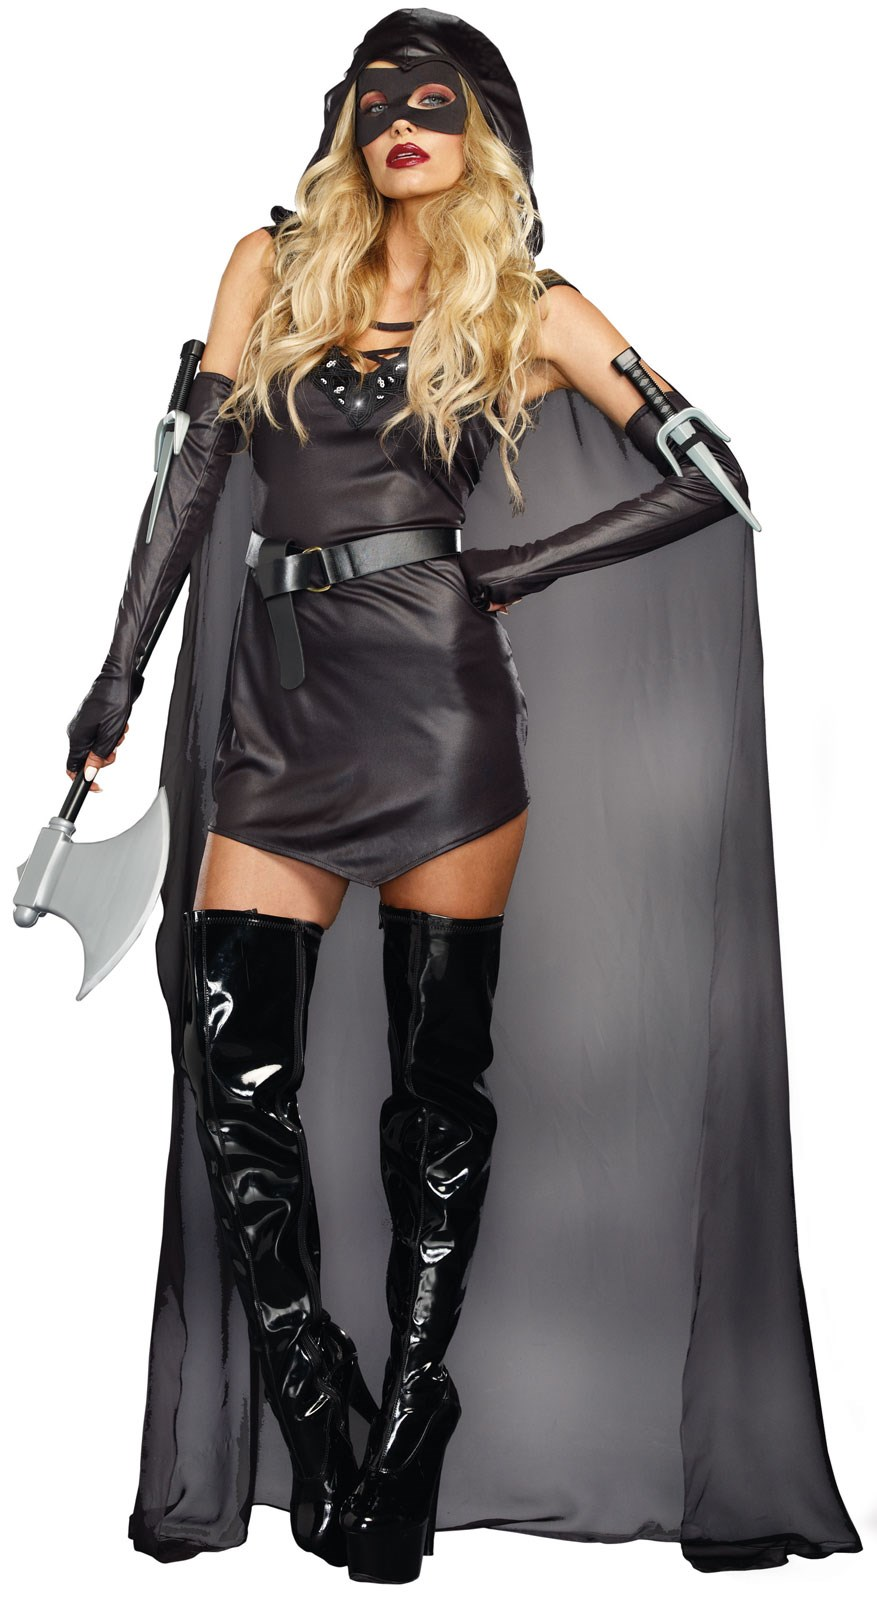 The Assassins Costume For Women